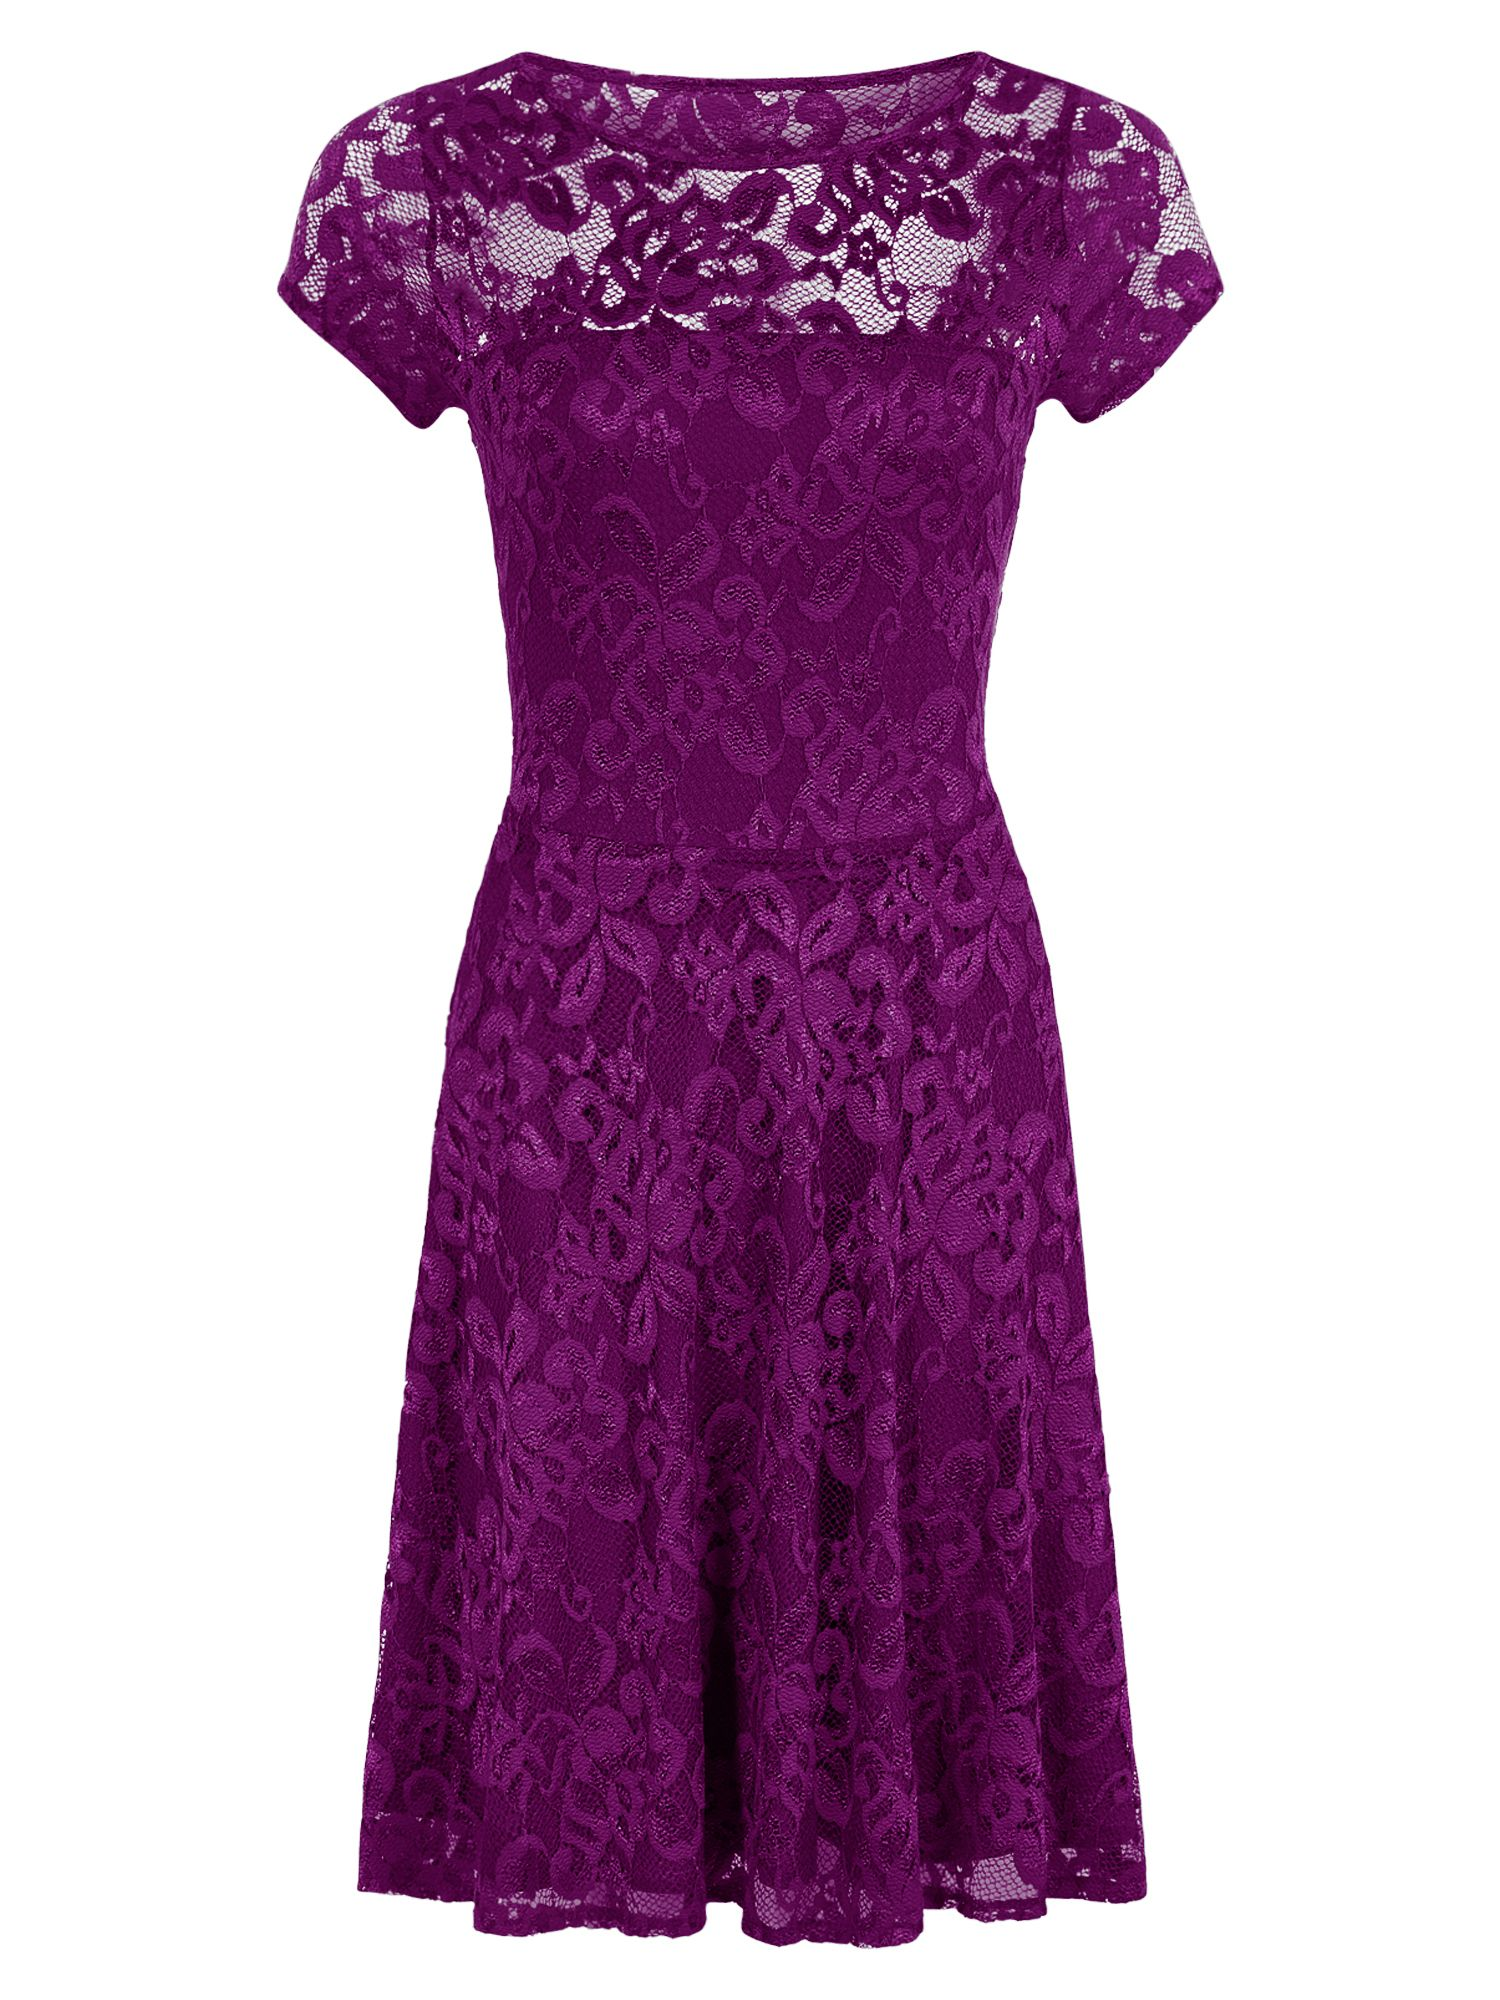 HotSquash Lace Fit n Flare Dress with Thermal Lini, Purple